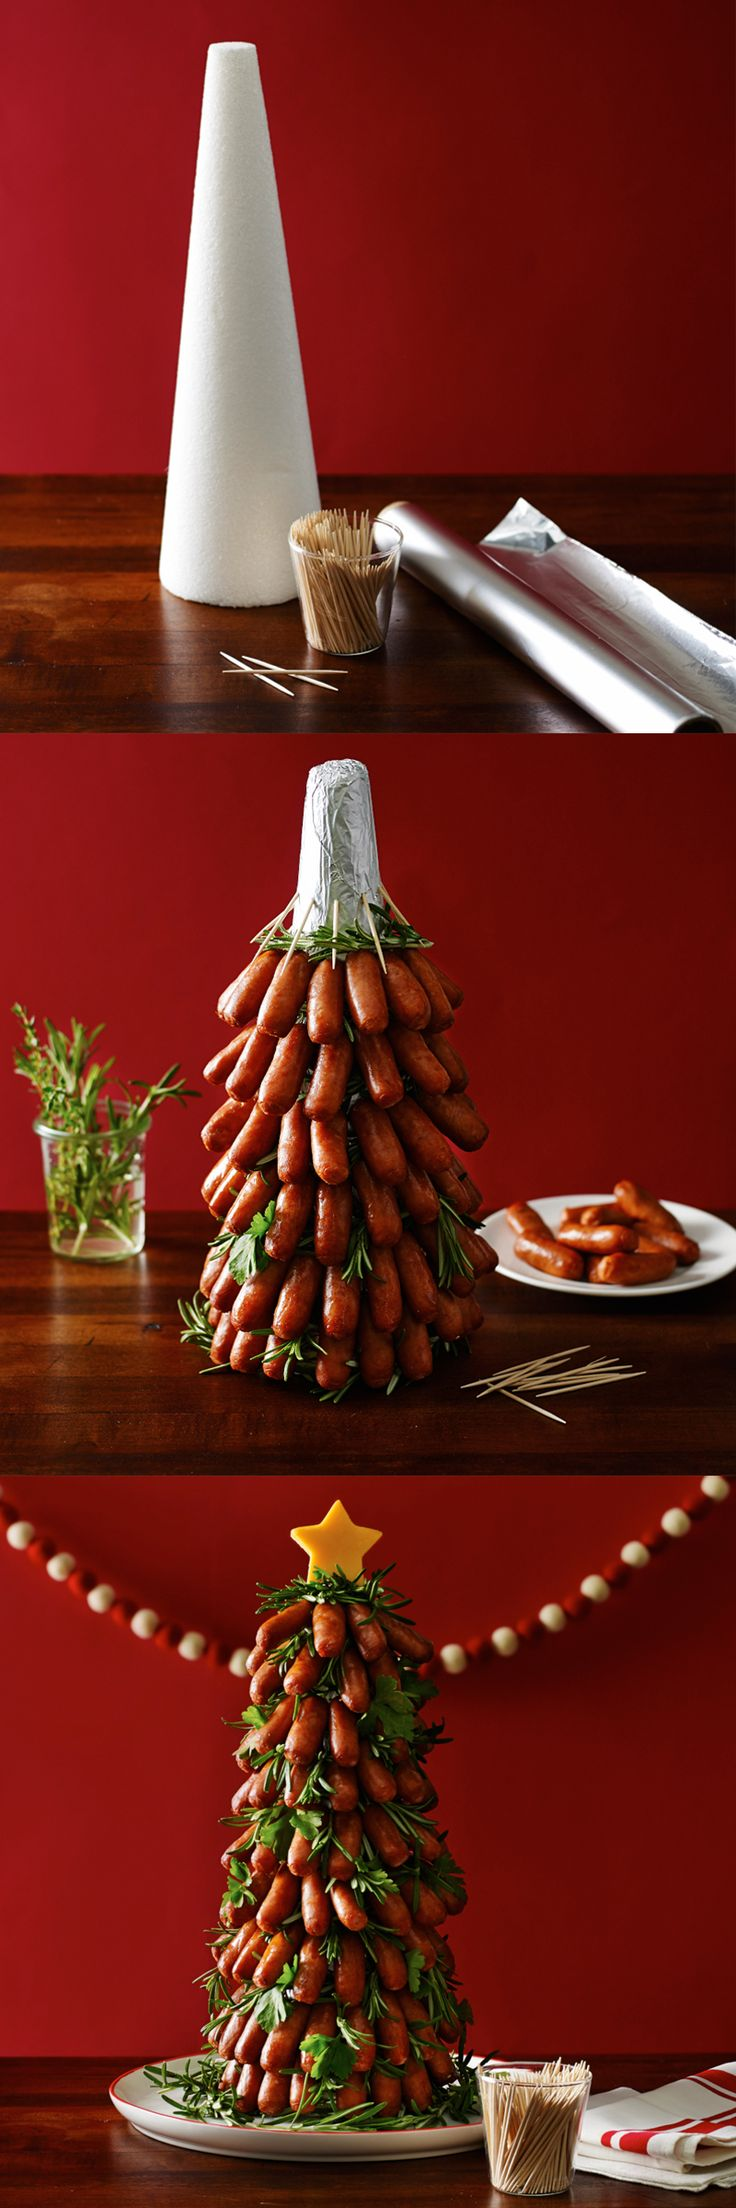 All you need is a styrofoam cone, foil, toothpicks, and Lit'l Smokies® to make the most delicious tree you've ever seen!!